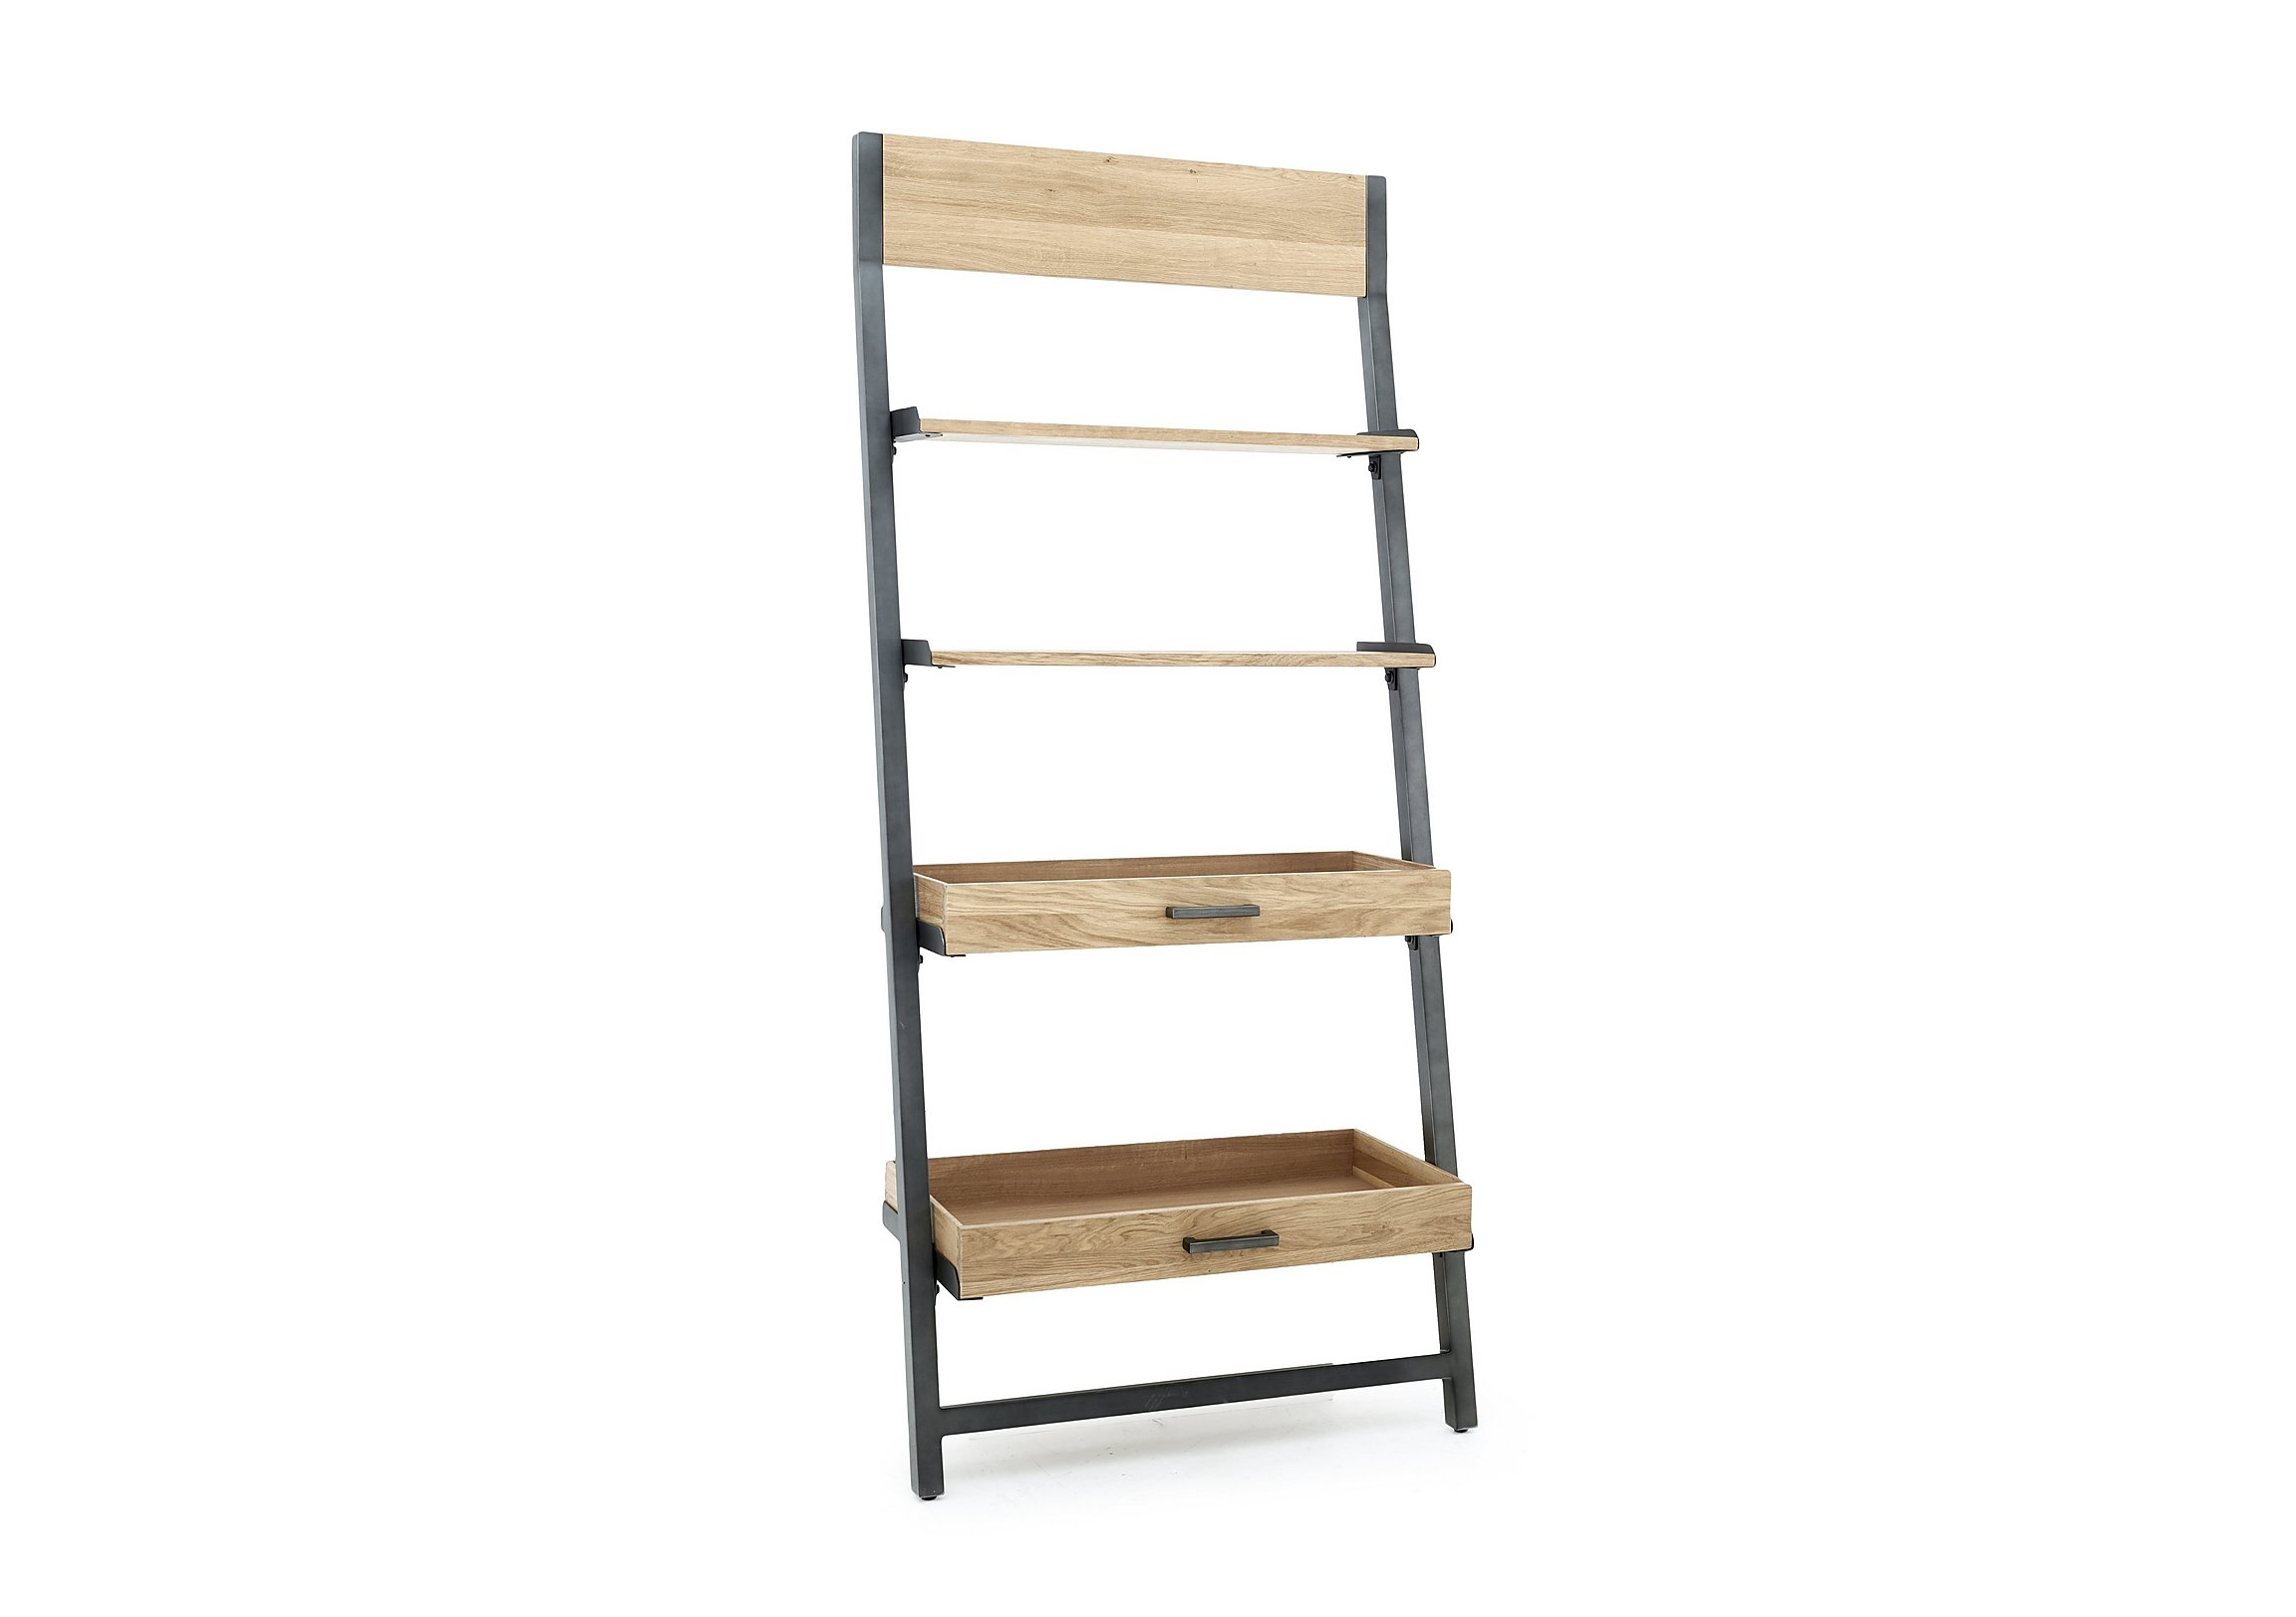 Earth Ladder Shelving Unit Loading Images